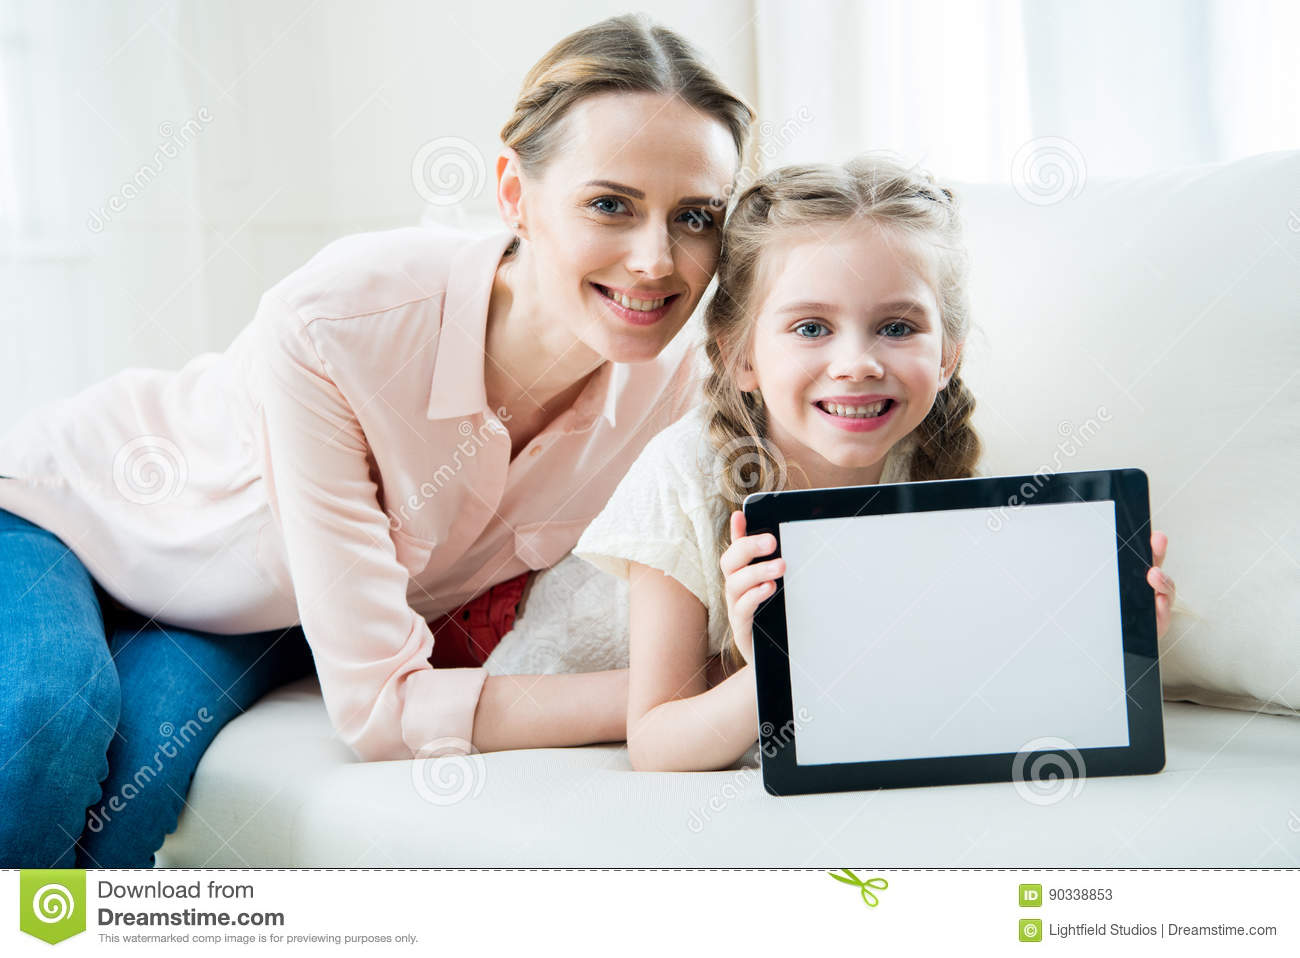 Smiling mother and daughter showing digital tablet